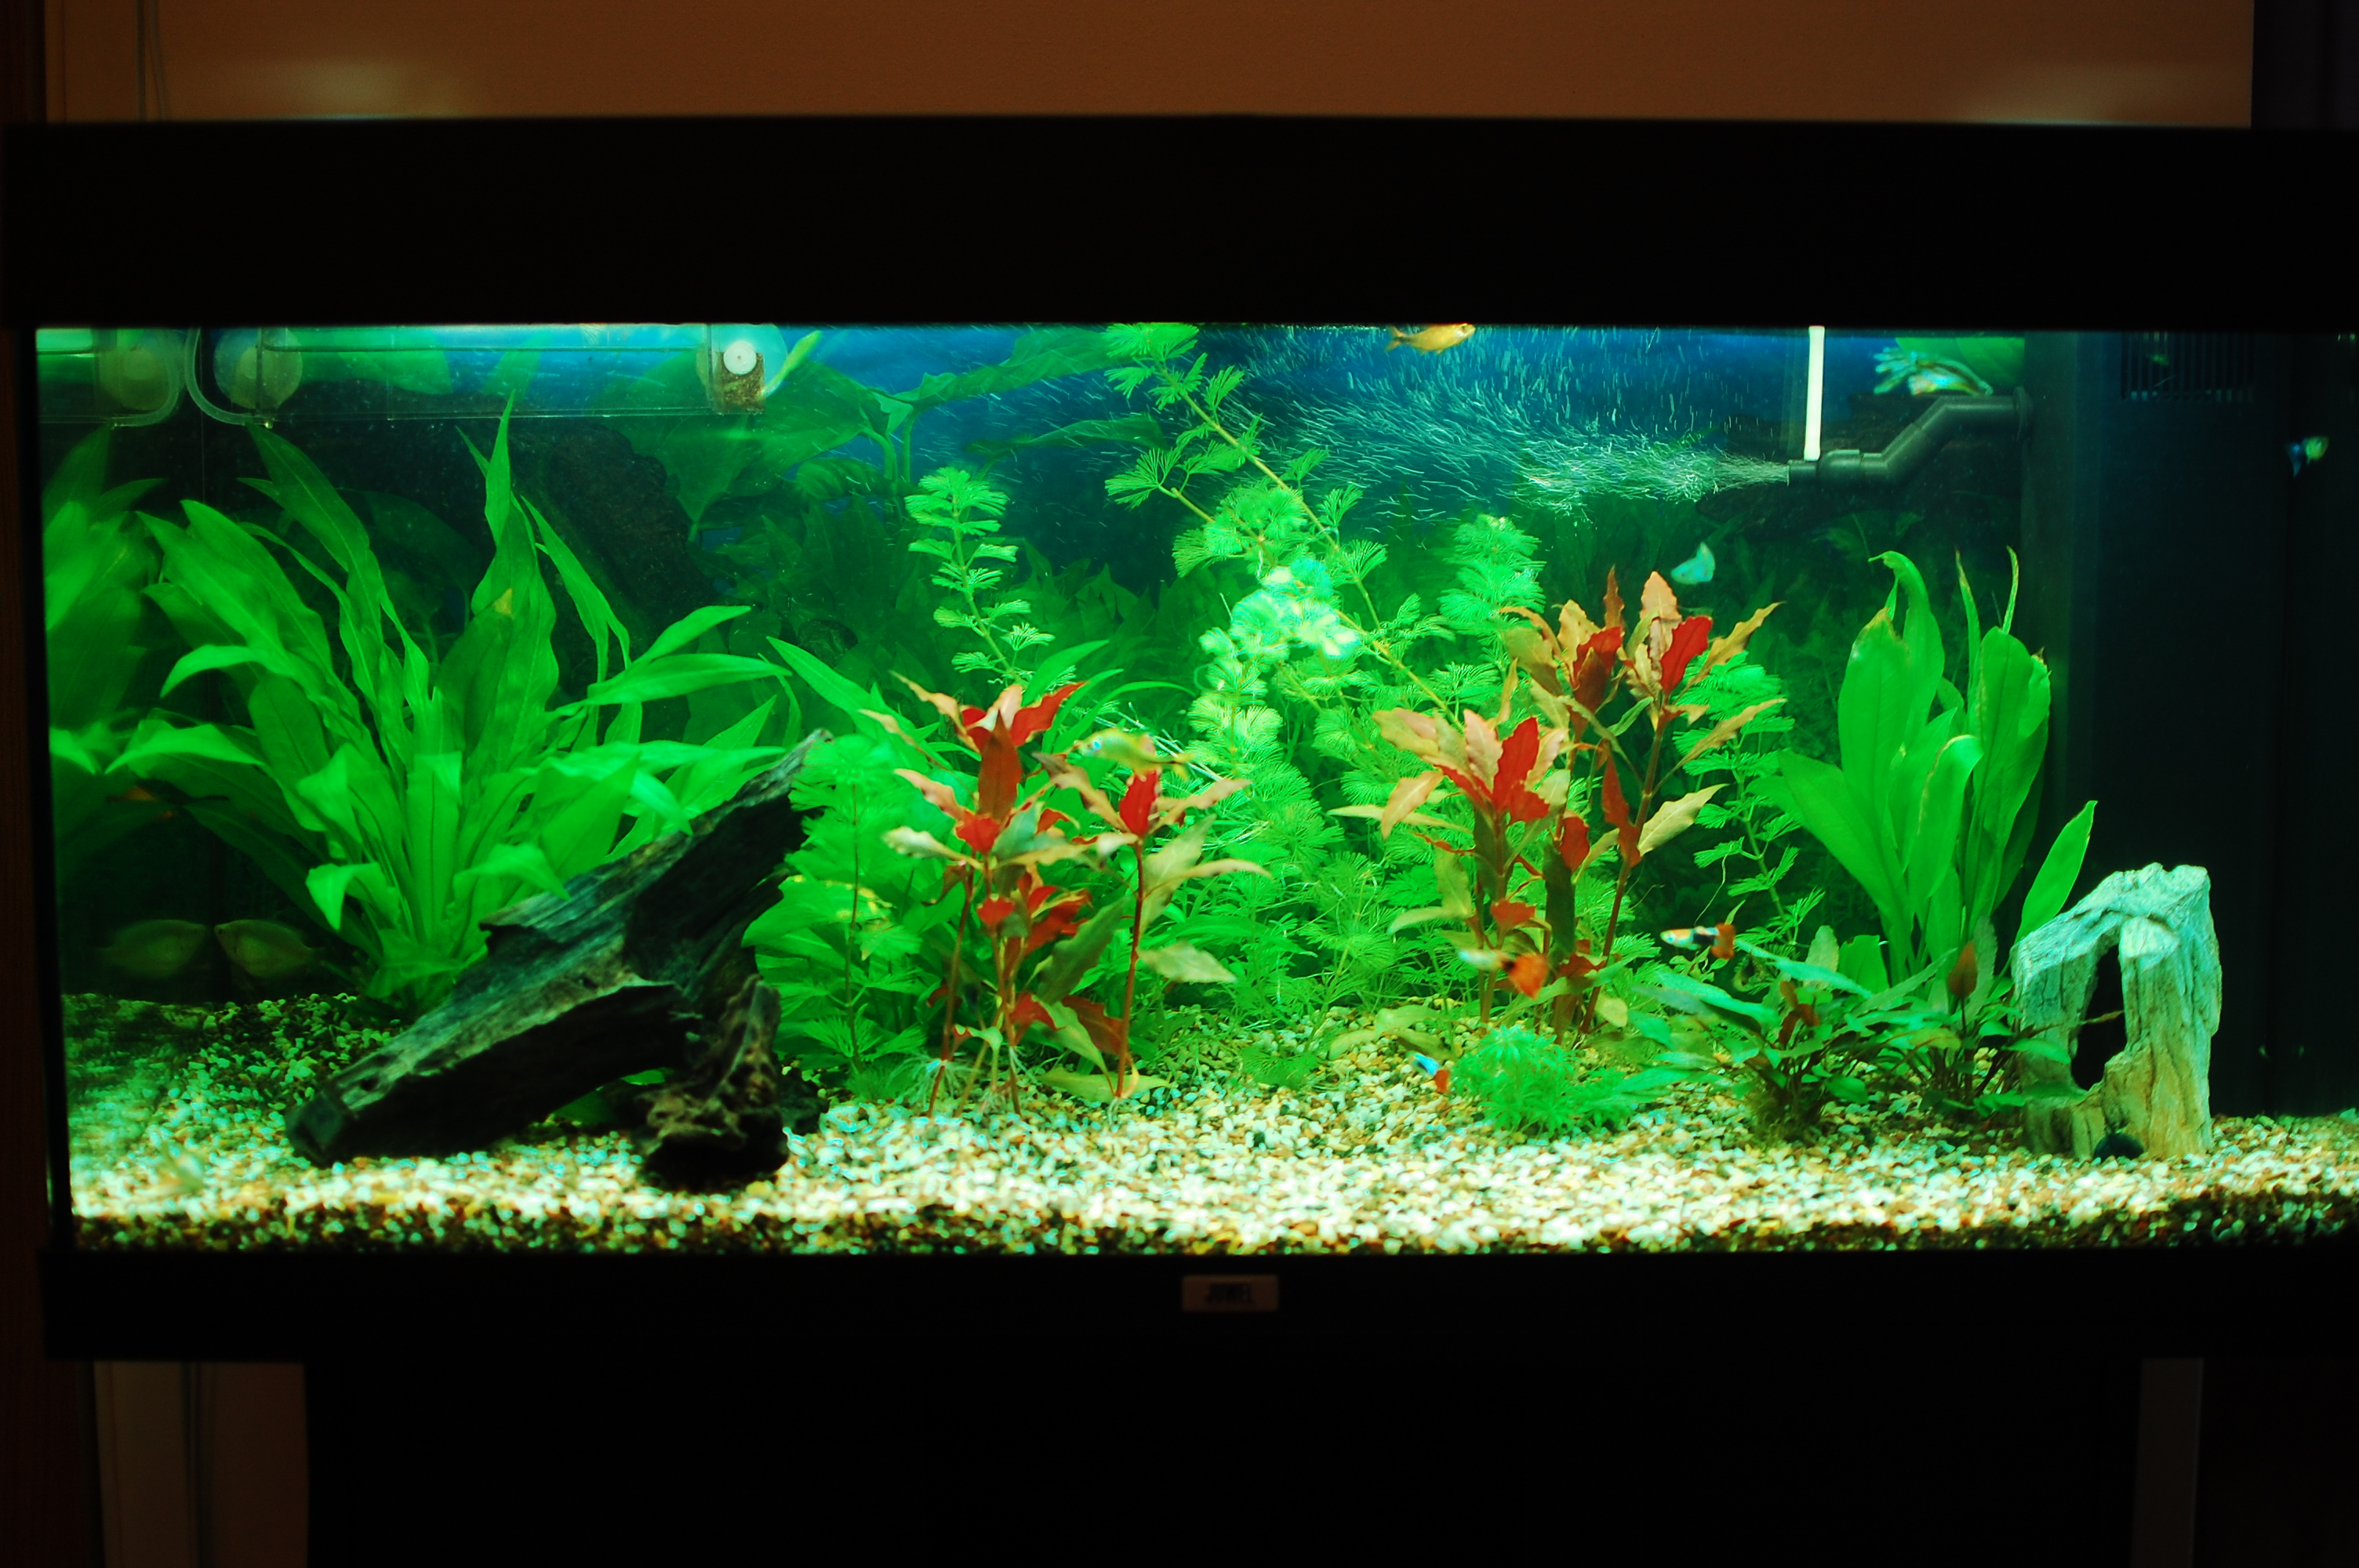 Our freshwater aquarium 30.10.2010 - Or how I made my freshwater ...